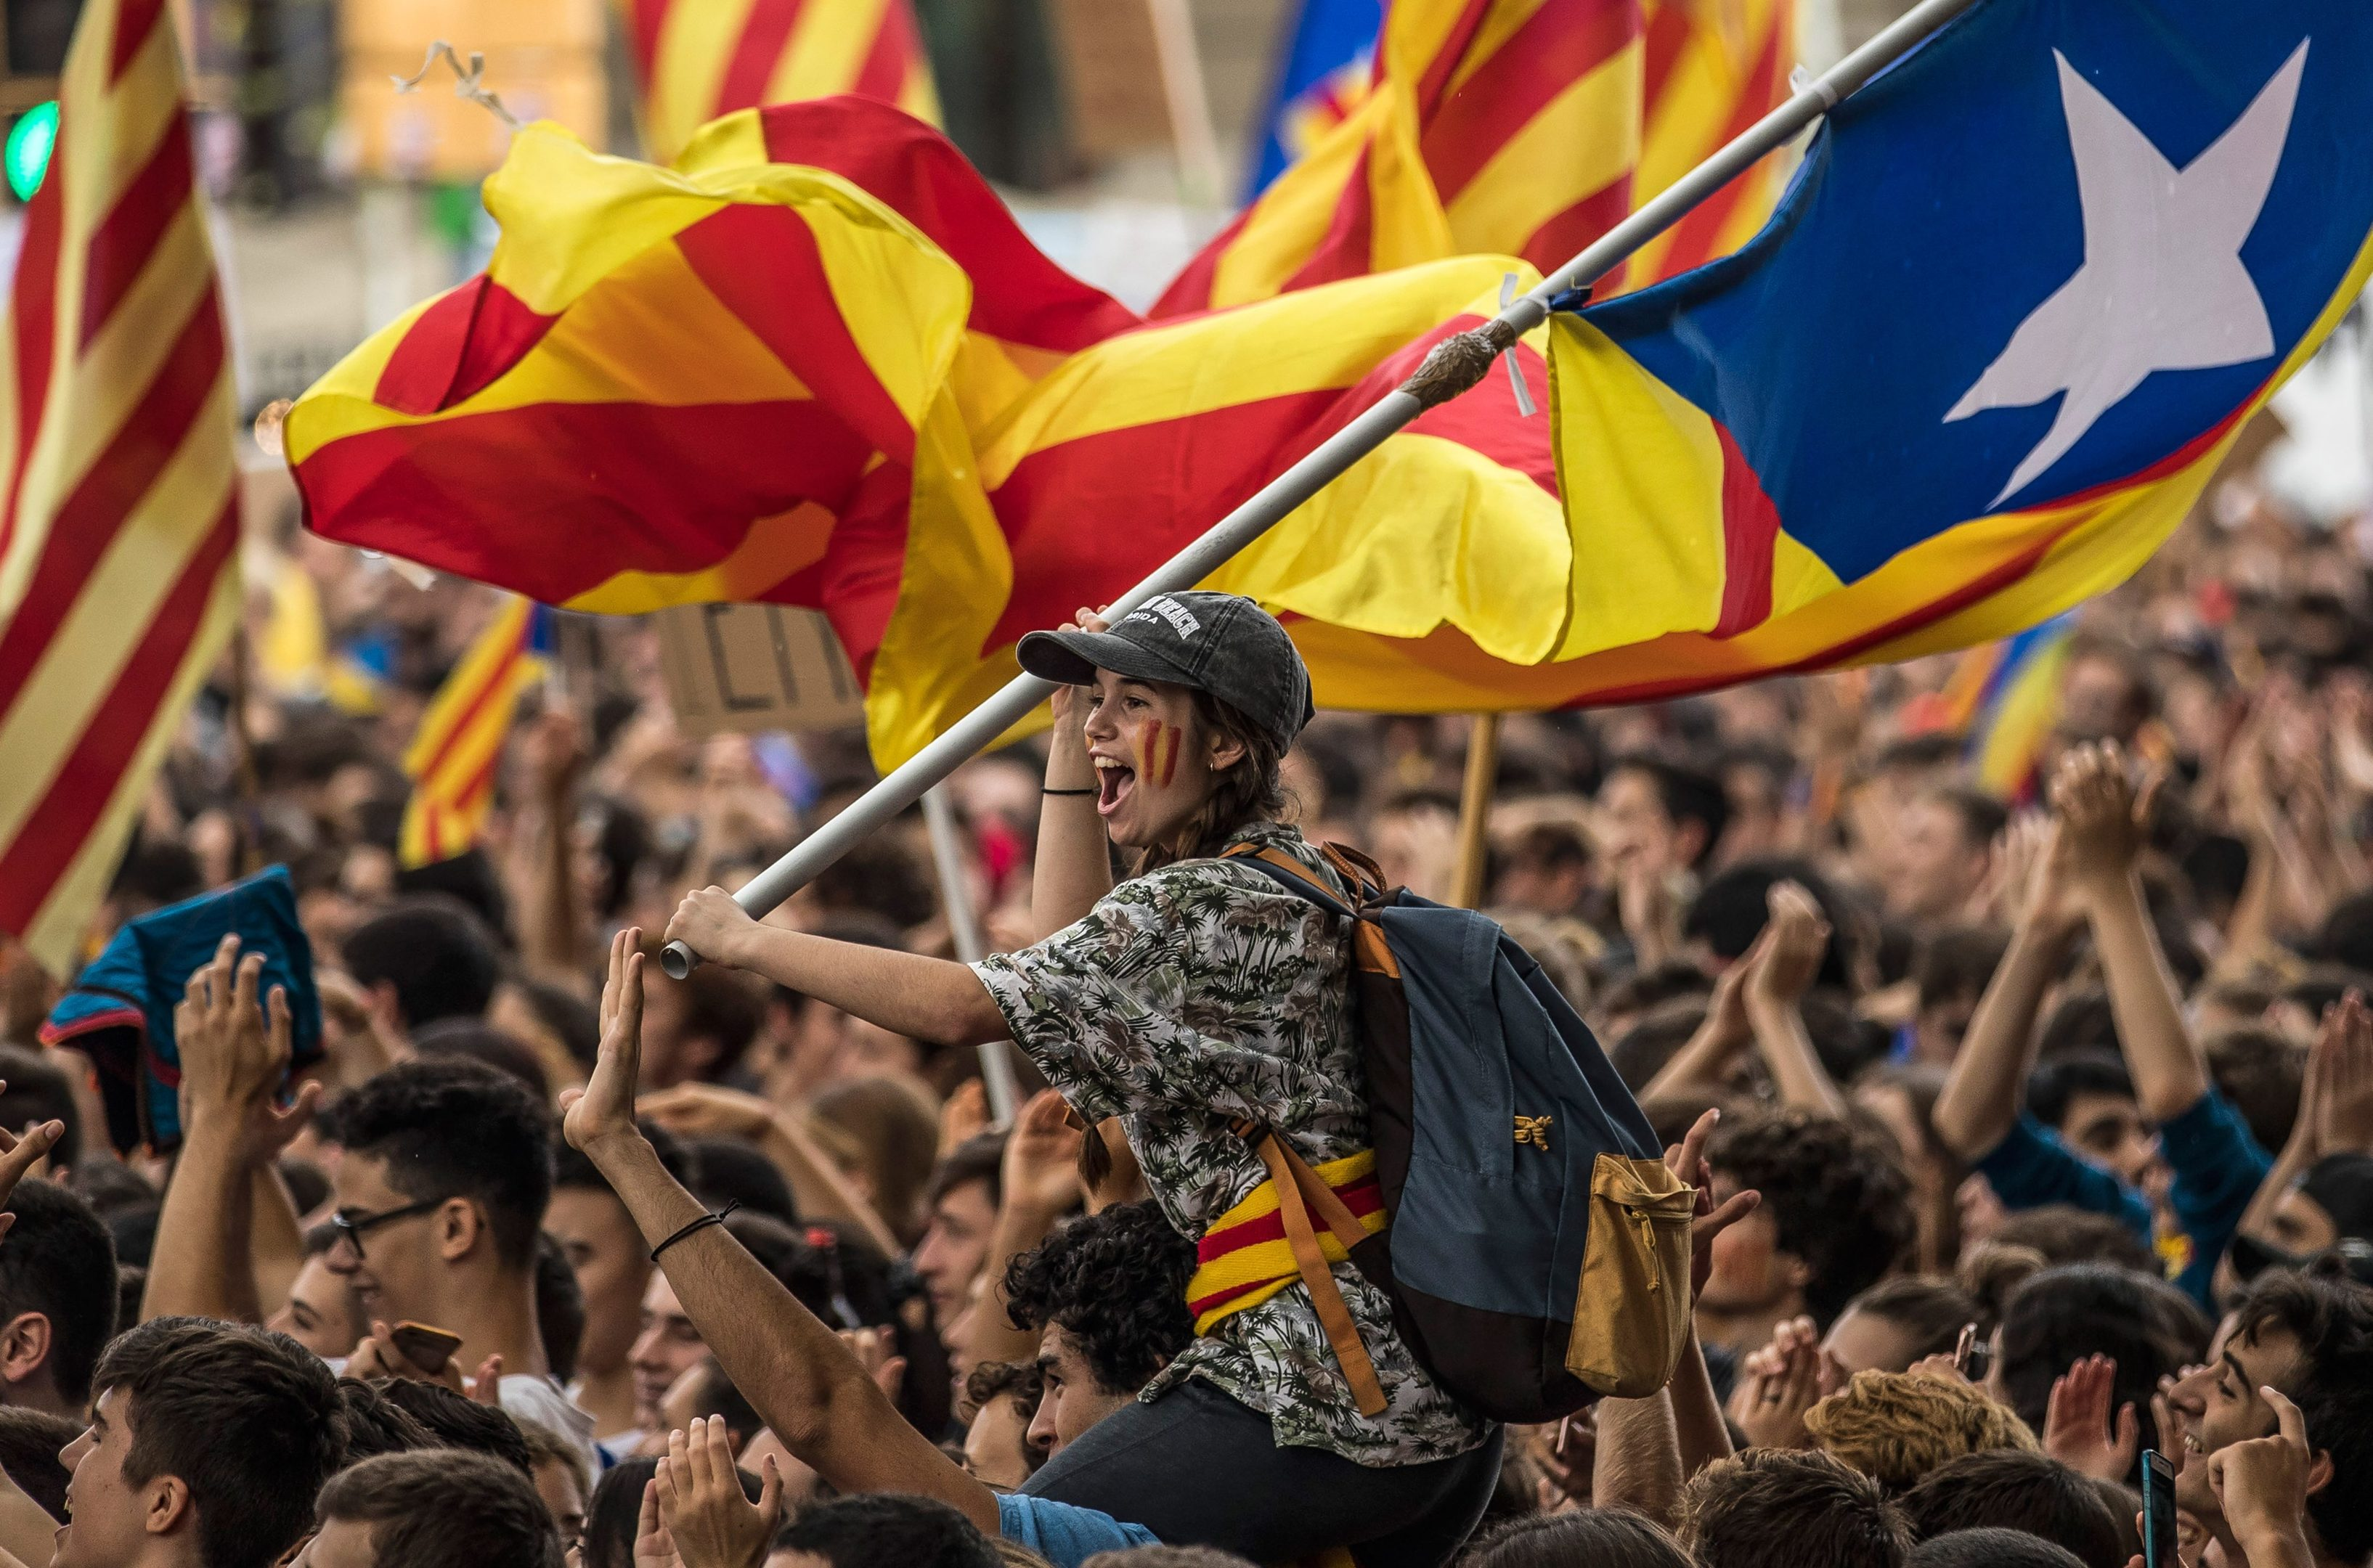 Students demonstrate against the position of the Spanish government to ban the Self-determination referendum of Catalonia during a university students strike on September 28, 2017 in Barcelona, Spain. (Dan Kitwood/Getty Images)